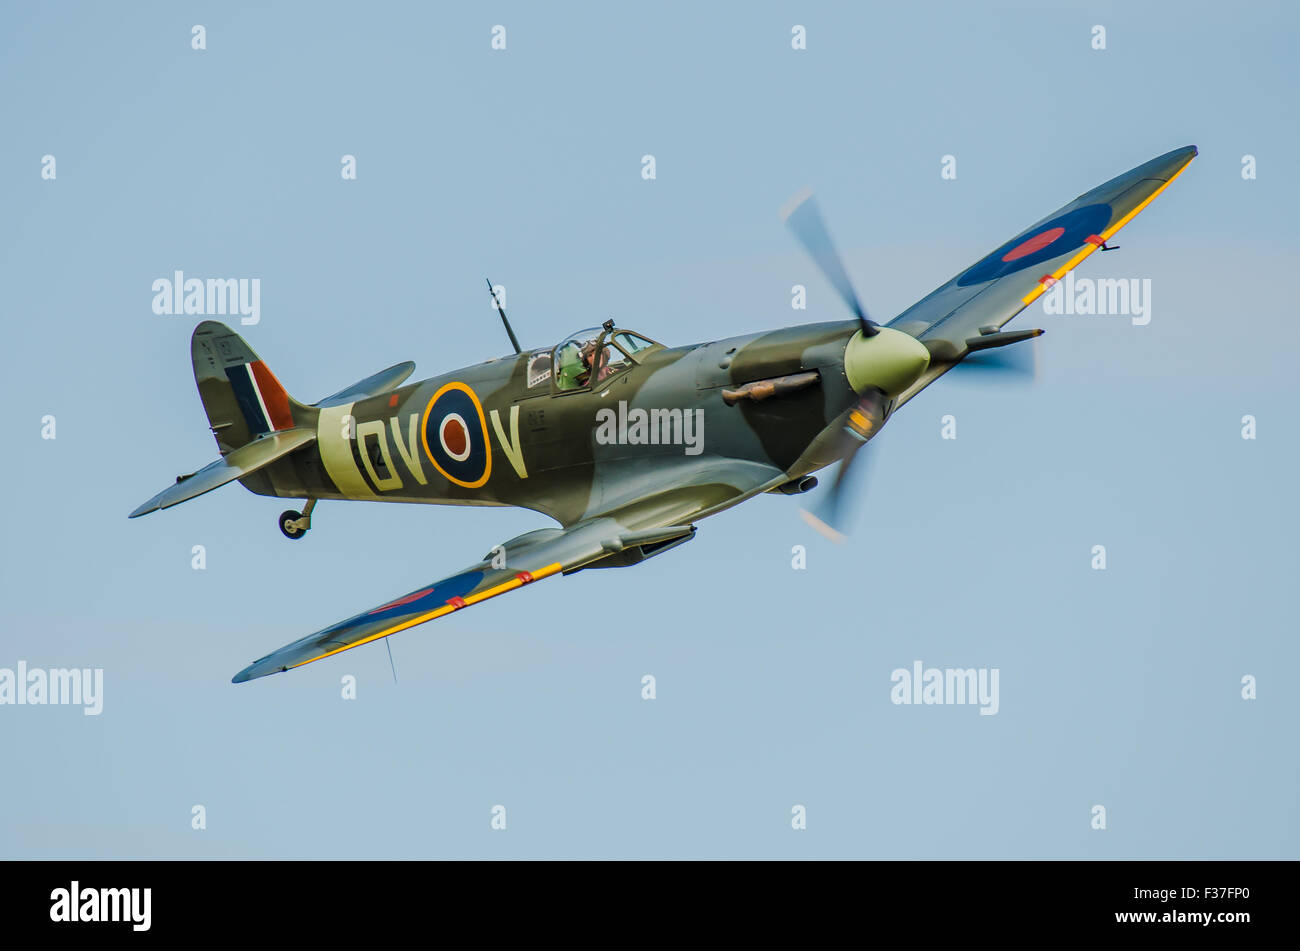 spitfire-v-ee602-flying-at-an-airshow-flown-by-pete-kynsey-second-F37FP0.jpg